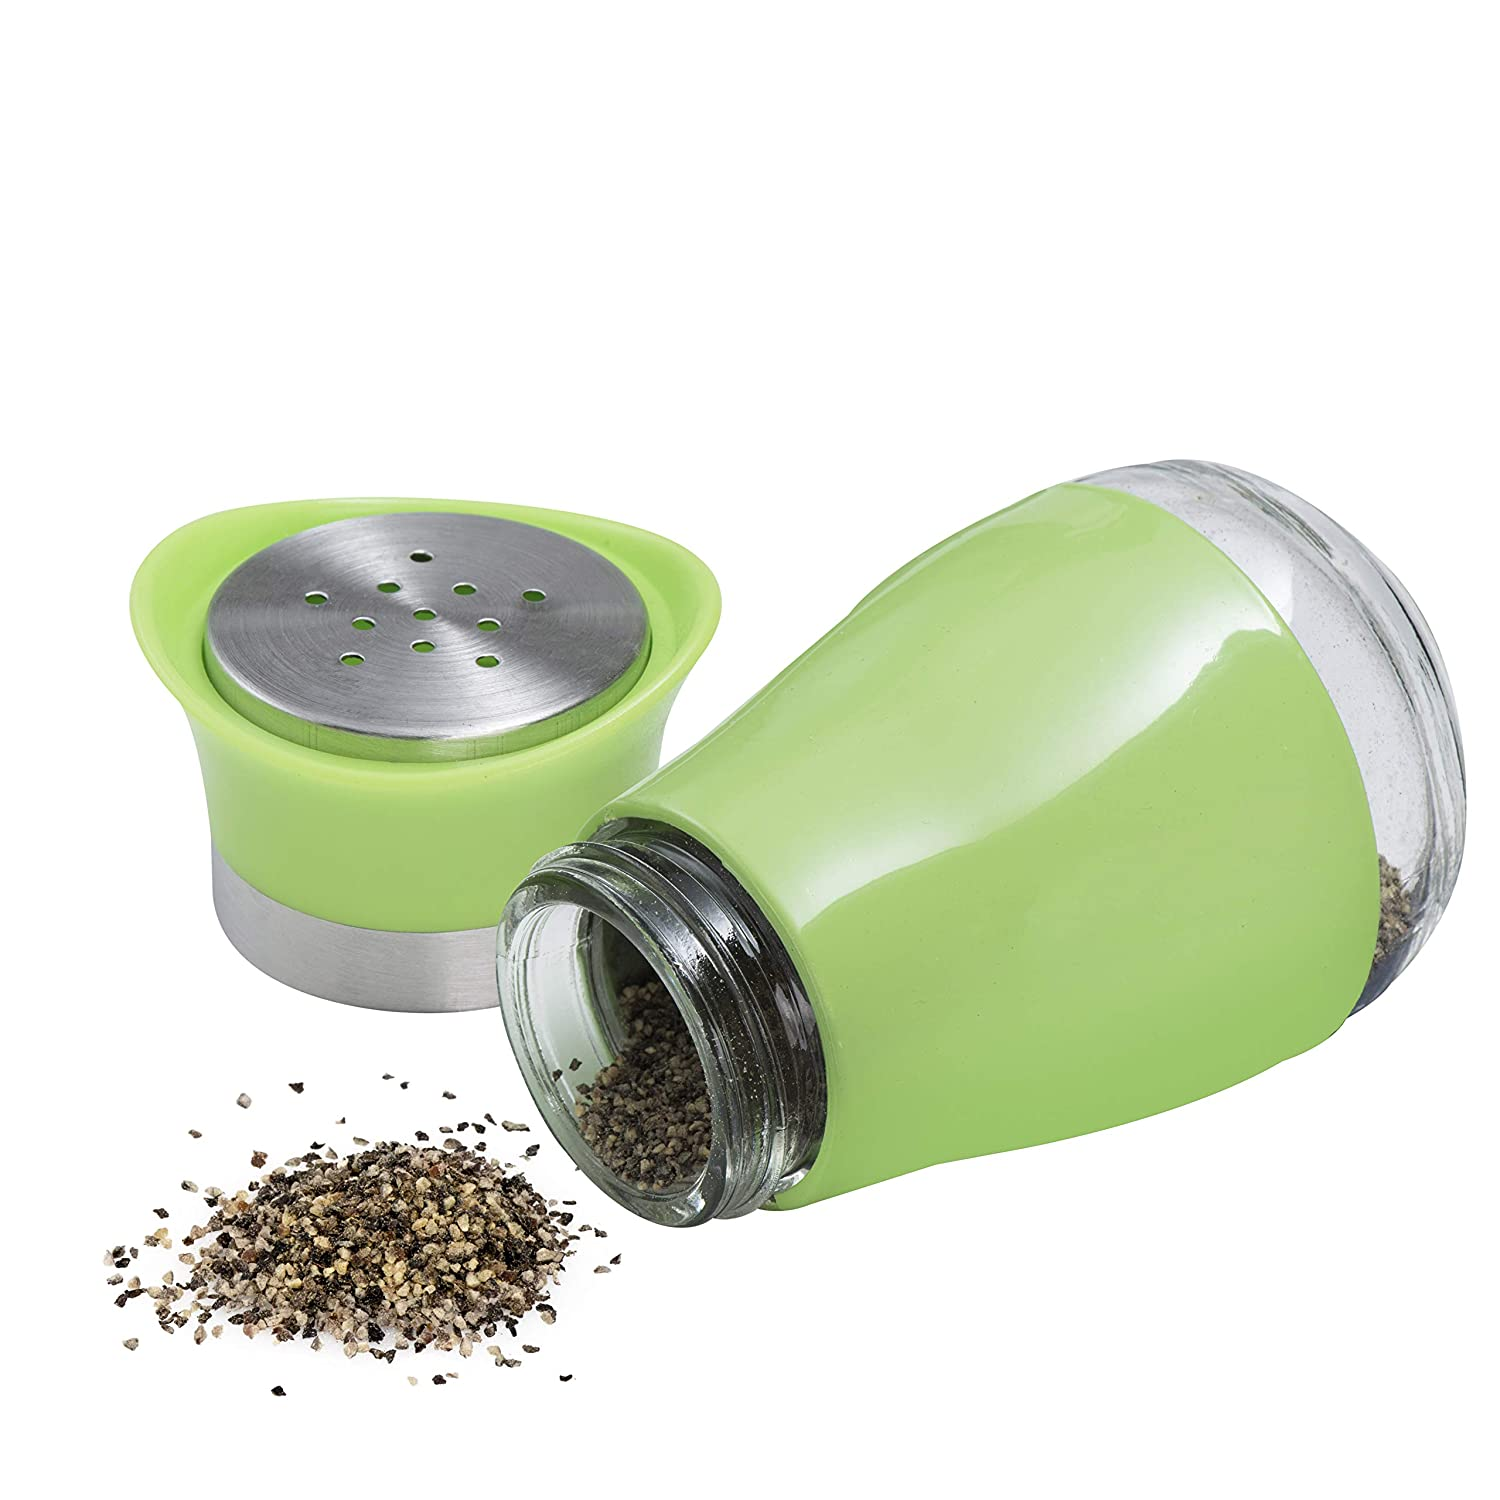 MITBAK Salt and Pepper Shakers Green Kitchen and Dining Room Use 2-Pc. Set Refillable Design Elegant w//Clear Glass Bottom Compact Cooking Classic